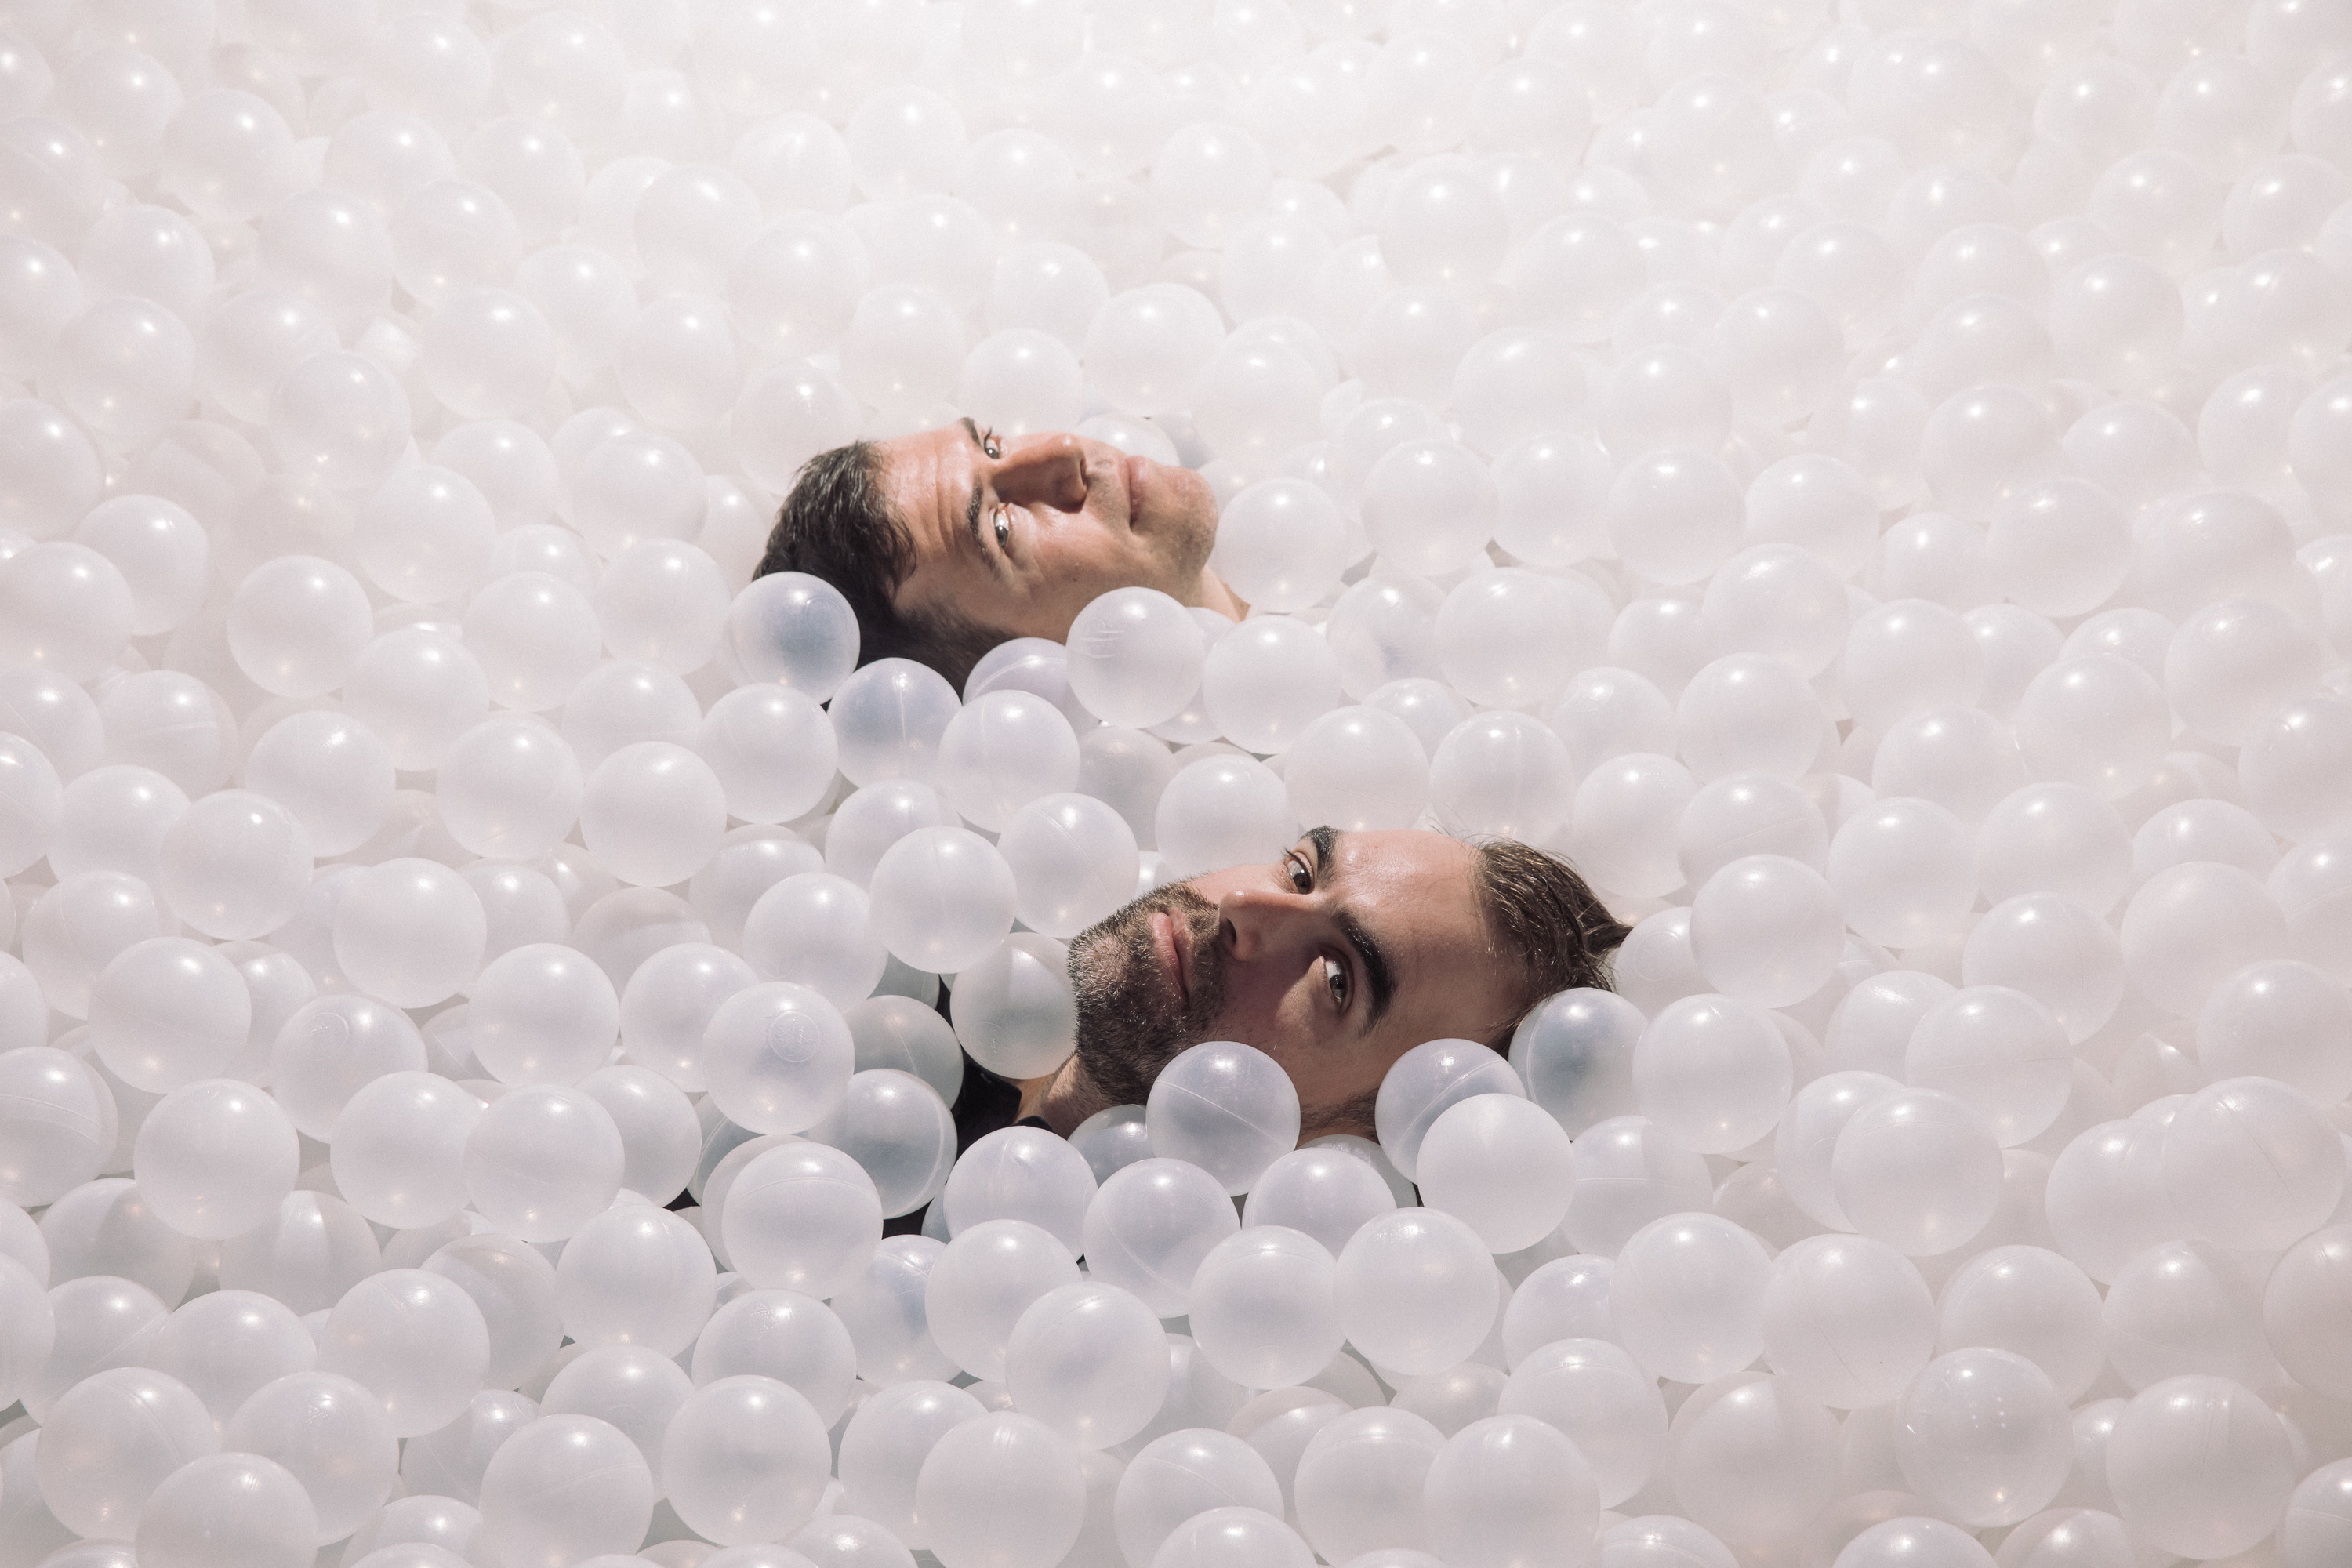 There39s A Giant Ball Pit At Barangaroo And You Can Swim In It